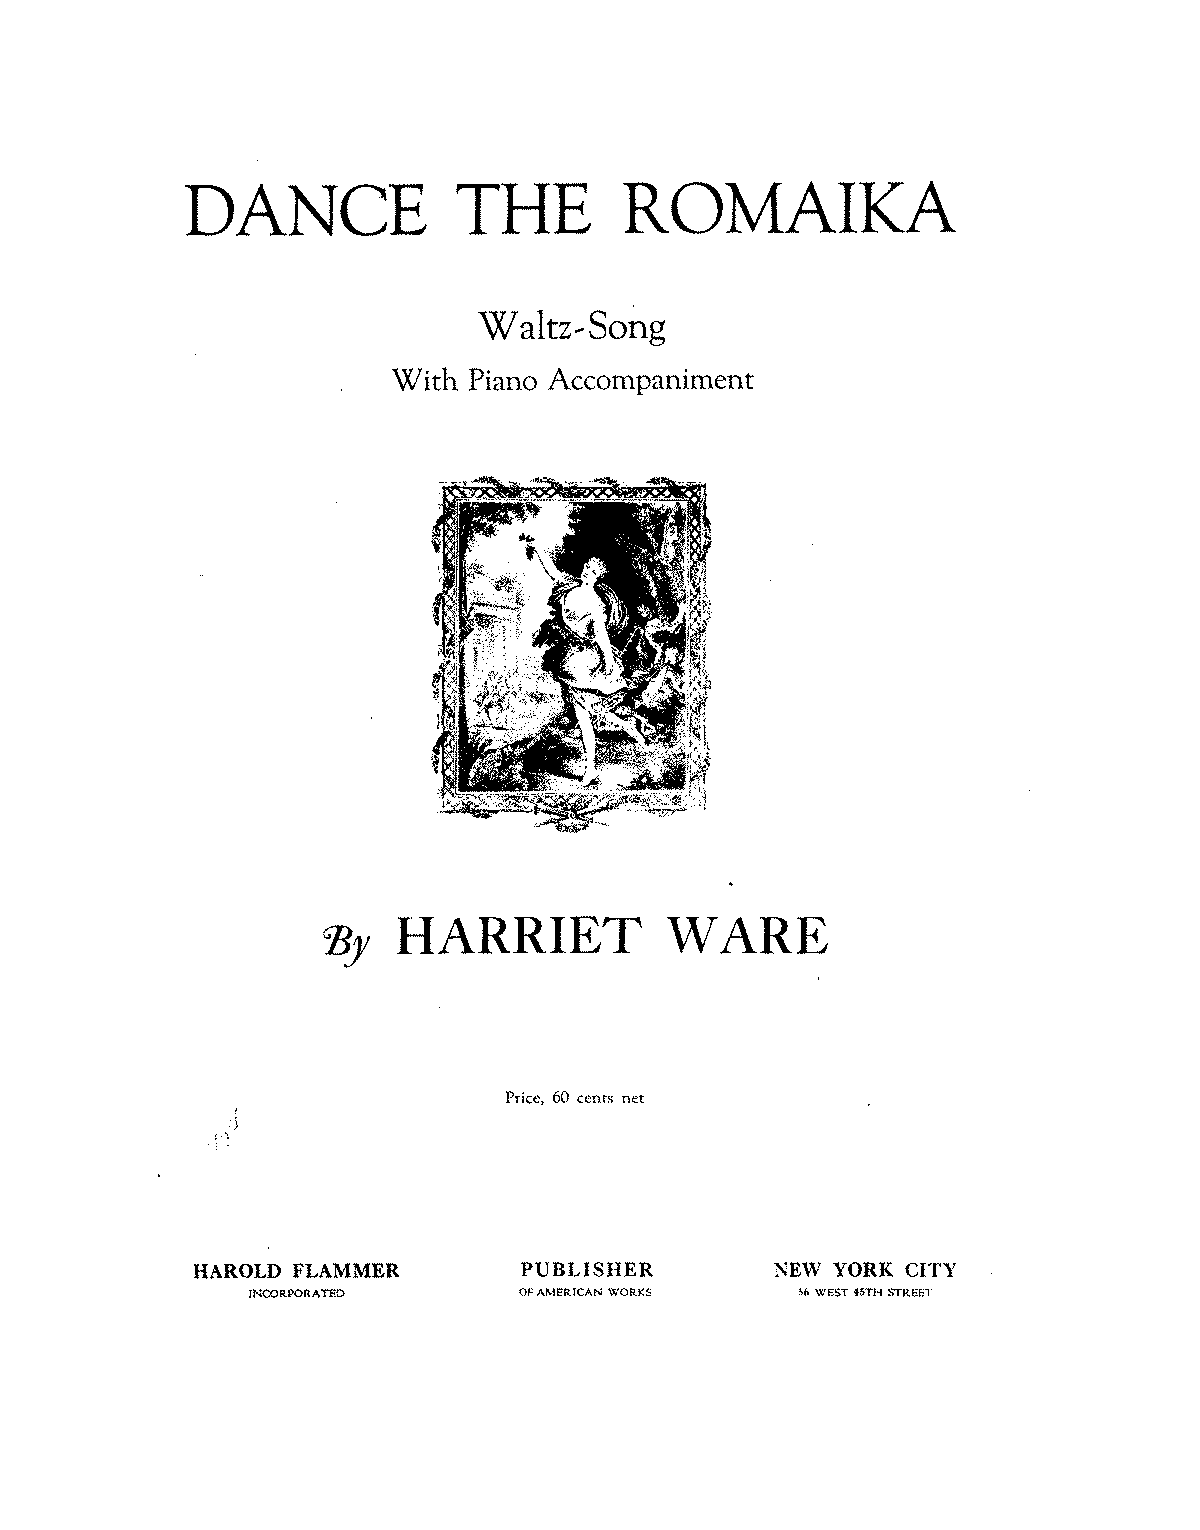 SIBLEY1802.21255.bb60-39087011996297dance.pdf